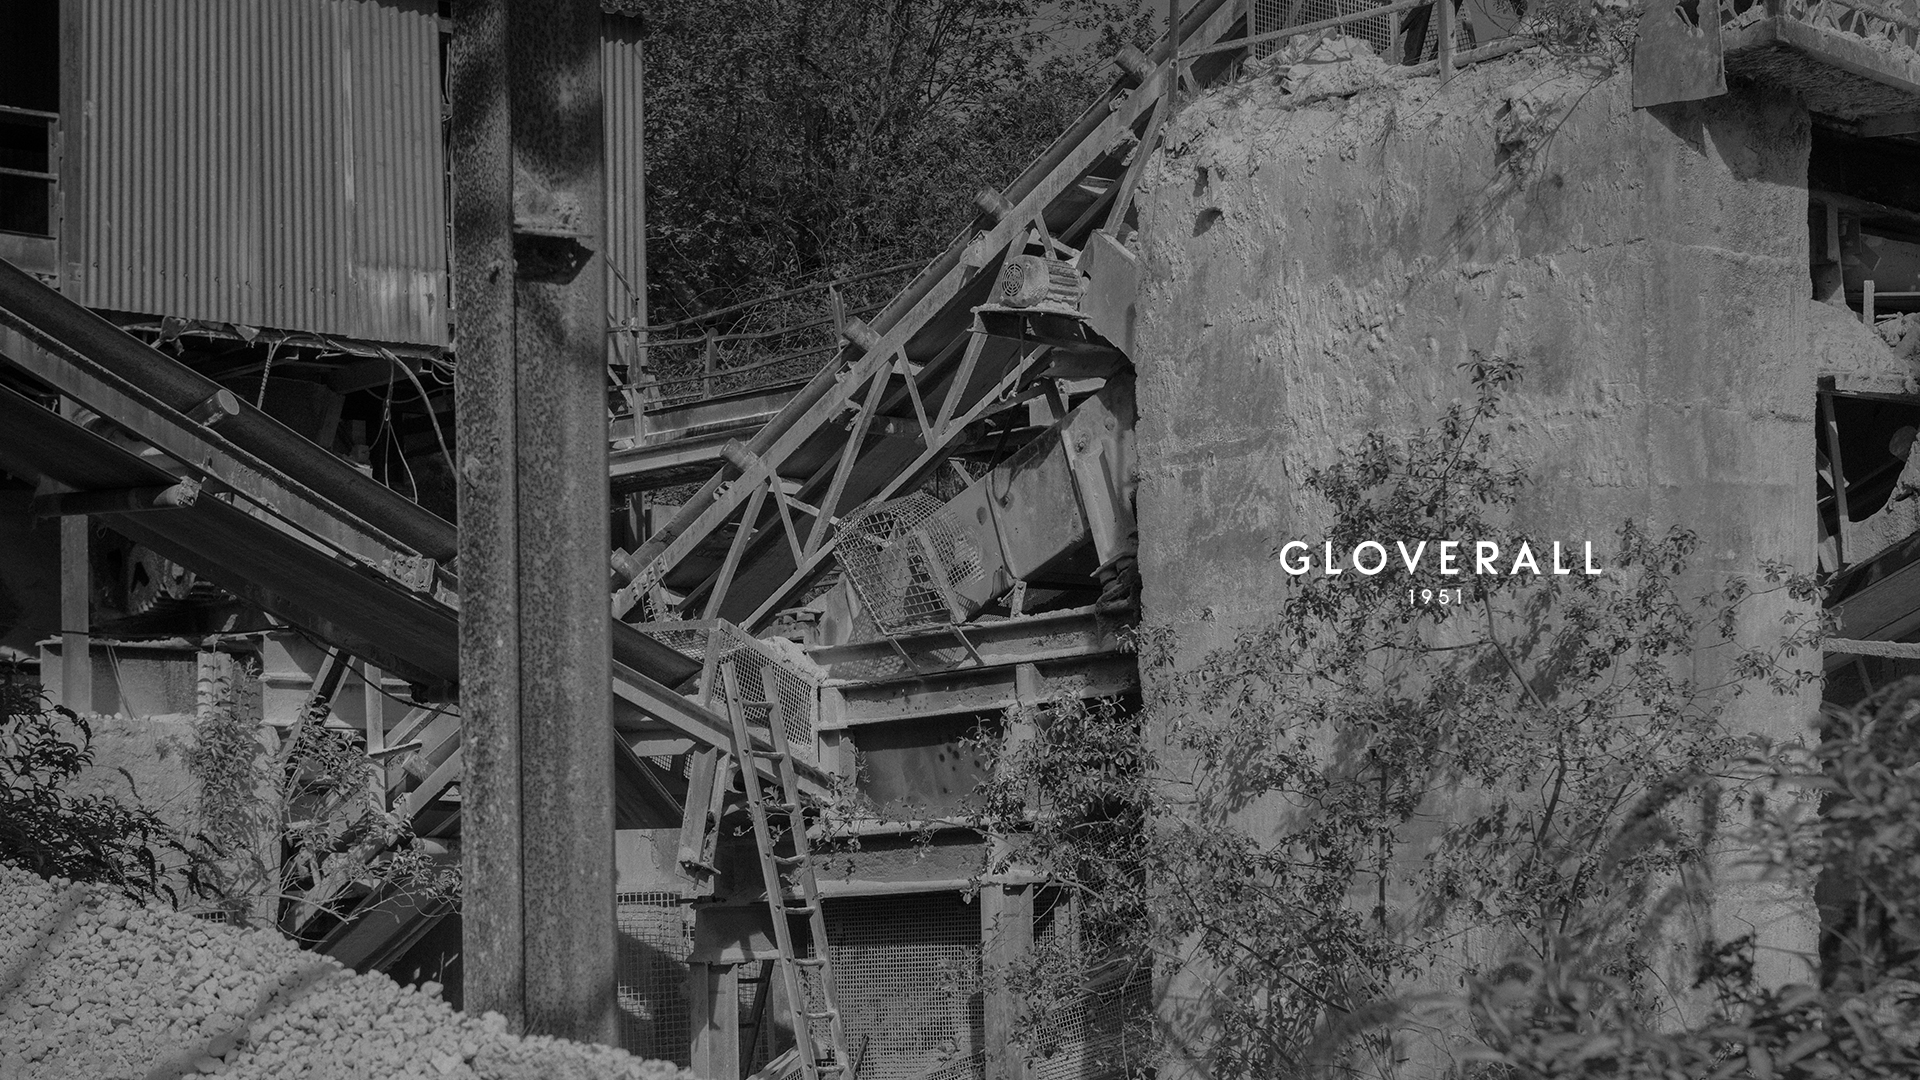 Gloverall_Signature_M_quarry.jpg